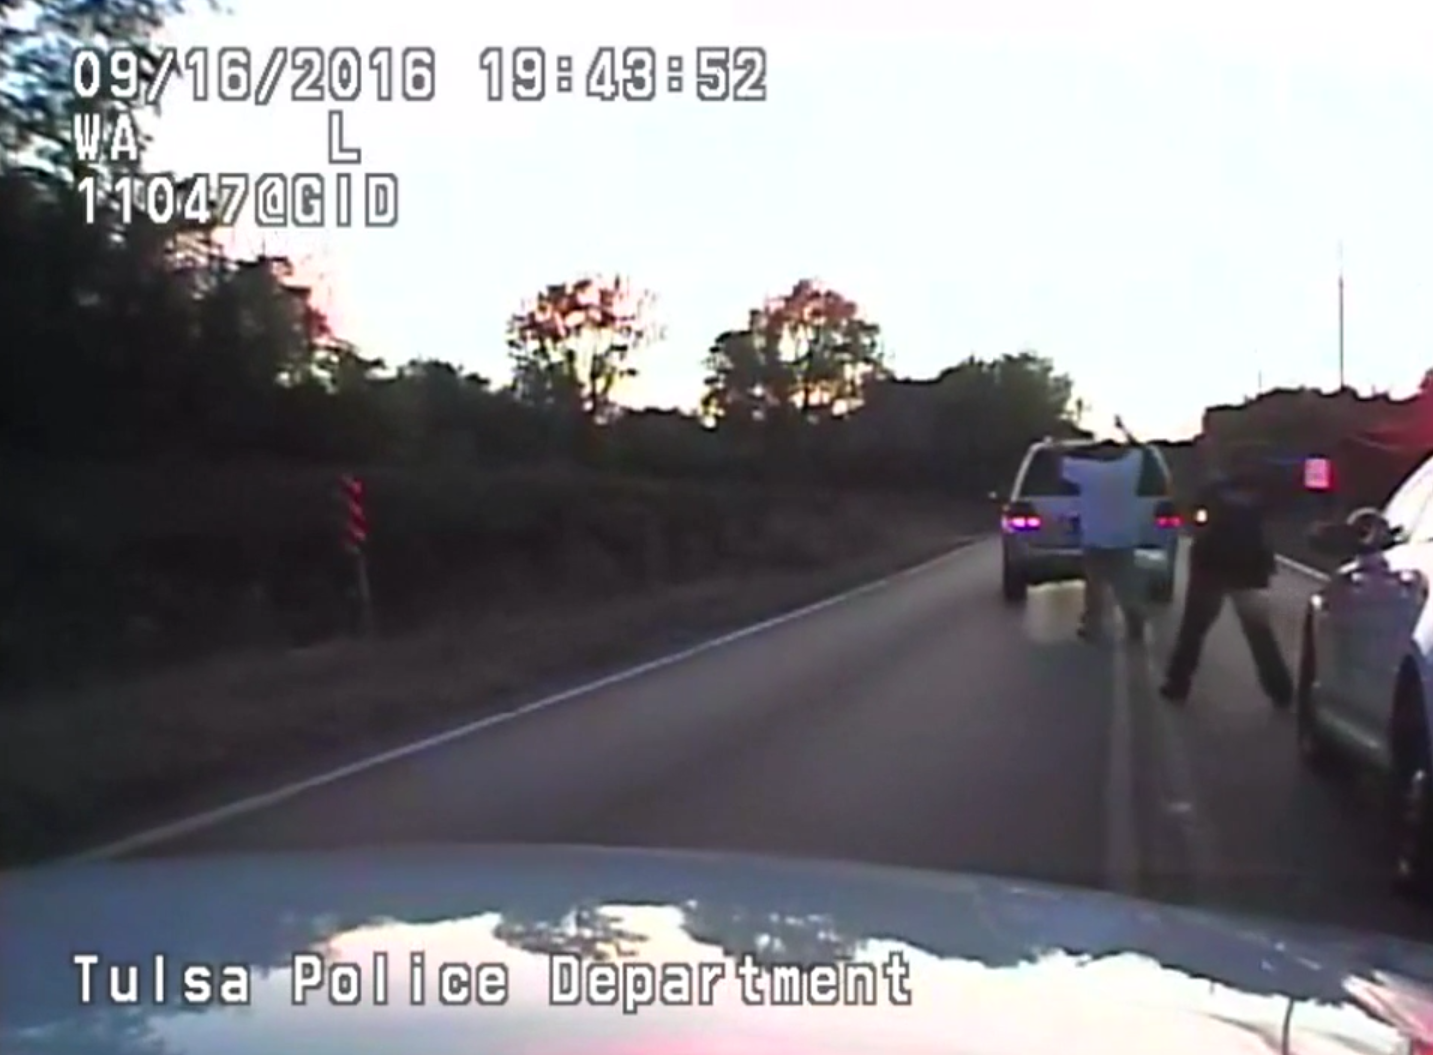 If you don't understand Black Lives Matter after Terence Crutcher's death, you never will